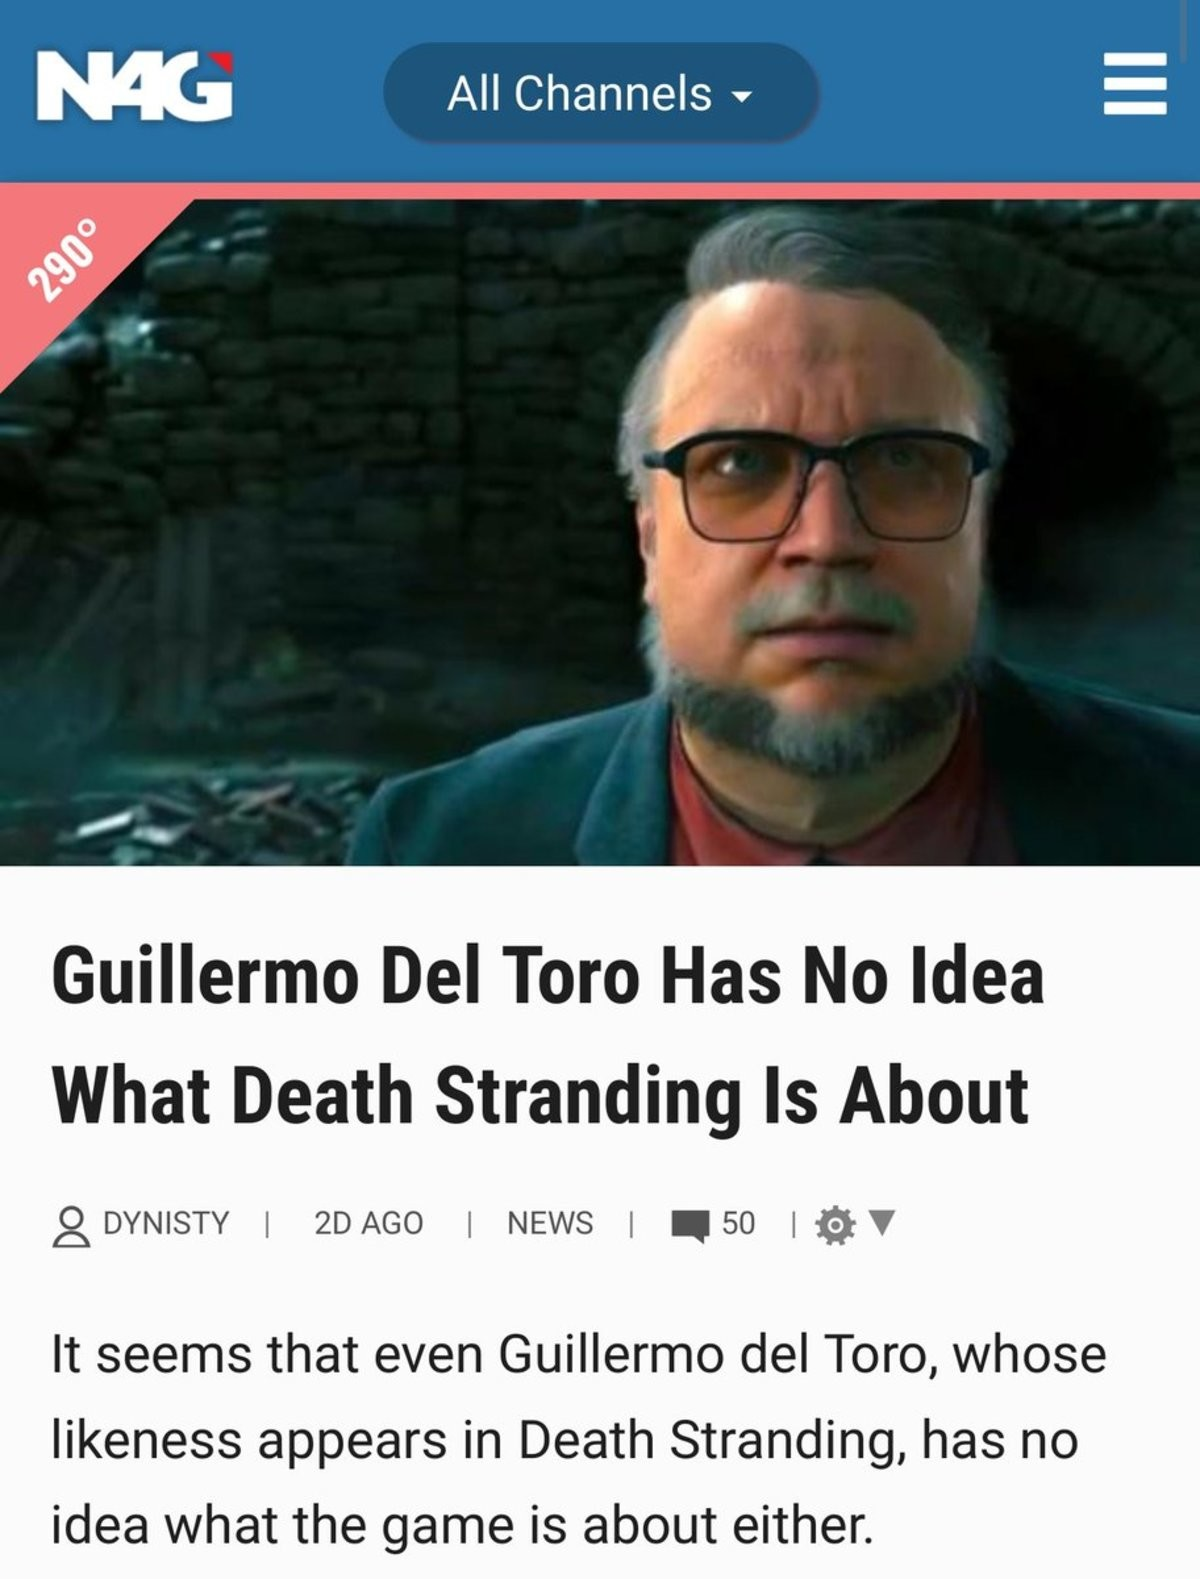 2DEEP4U The Game. To be fair you have to have a high IQ to appreciate Hideo Kojima. All Channels _ Del Tom Has No Tlt! rll What Death stranding (PII About It 'i